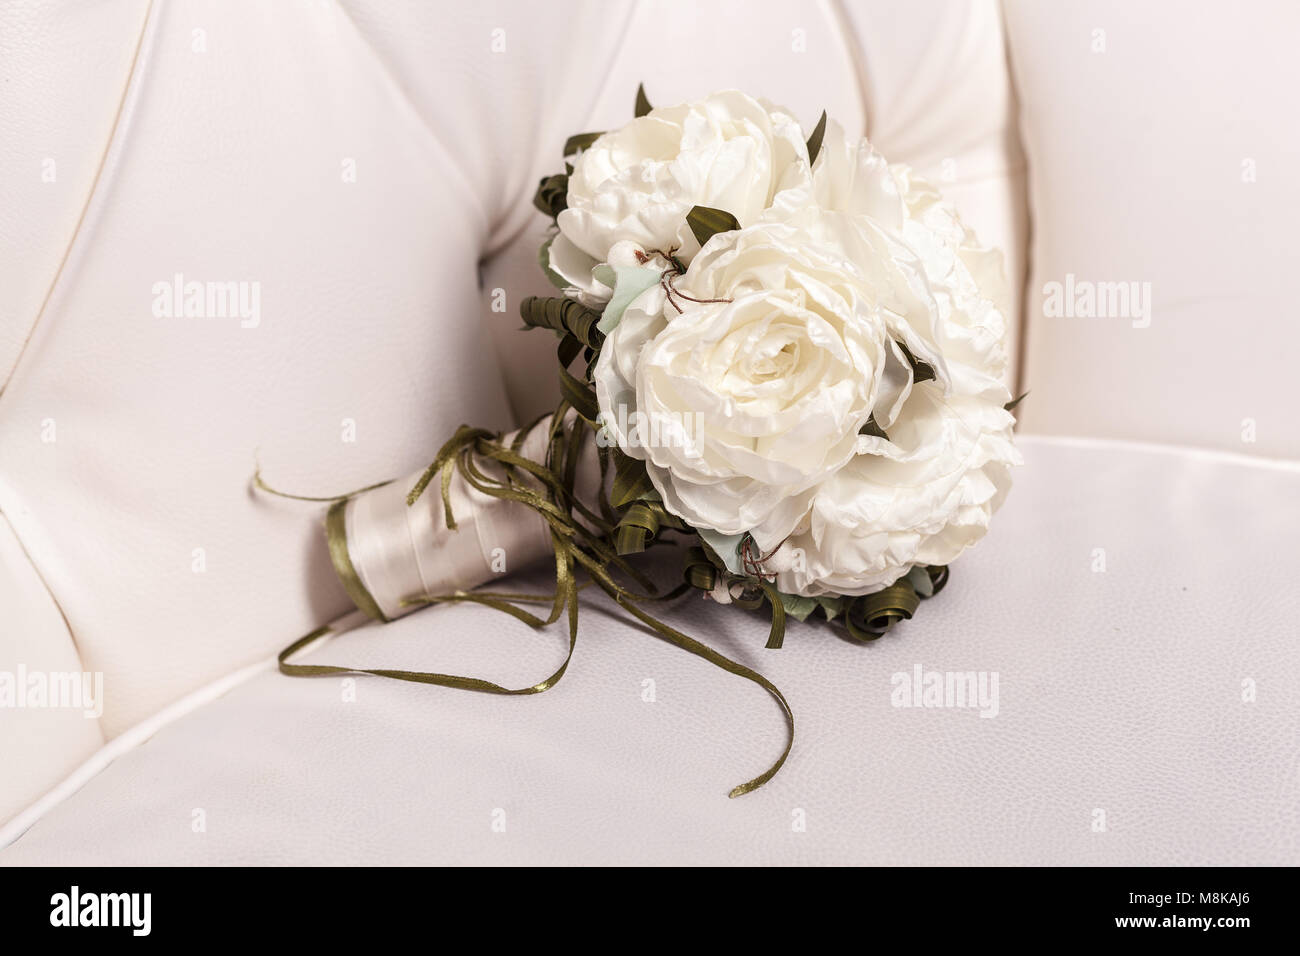 Bridal Bouquet Of White Rose In Bright Colors On White Leather Chair